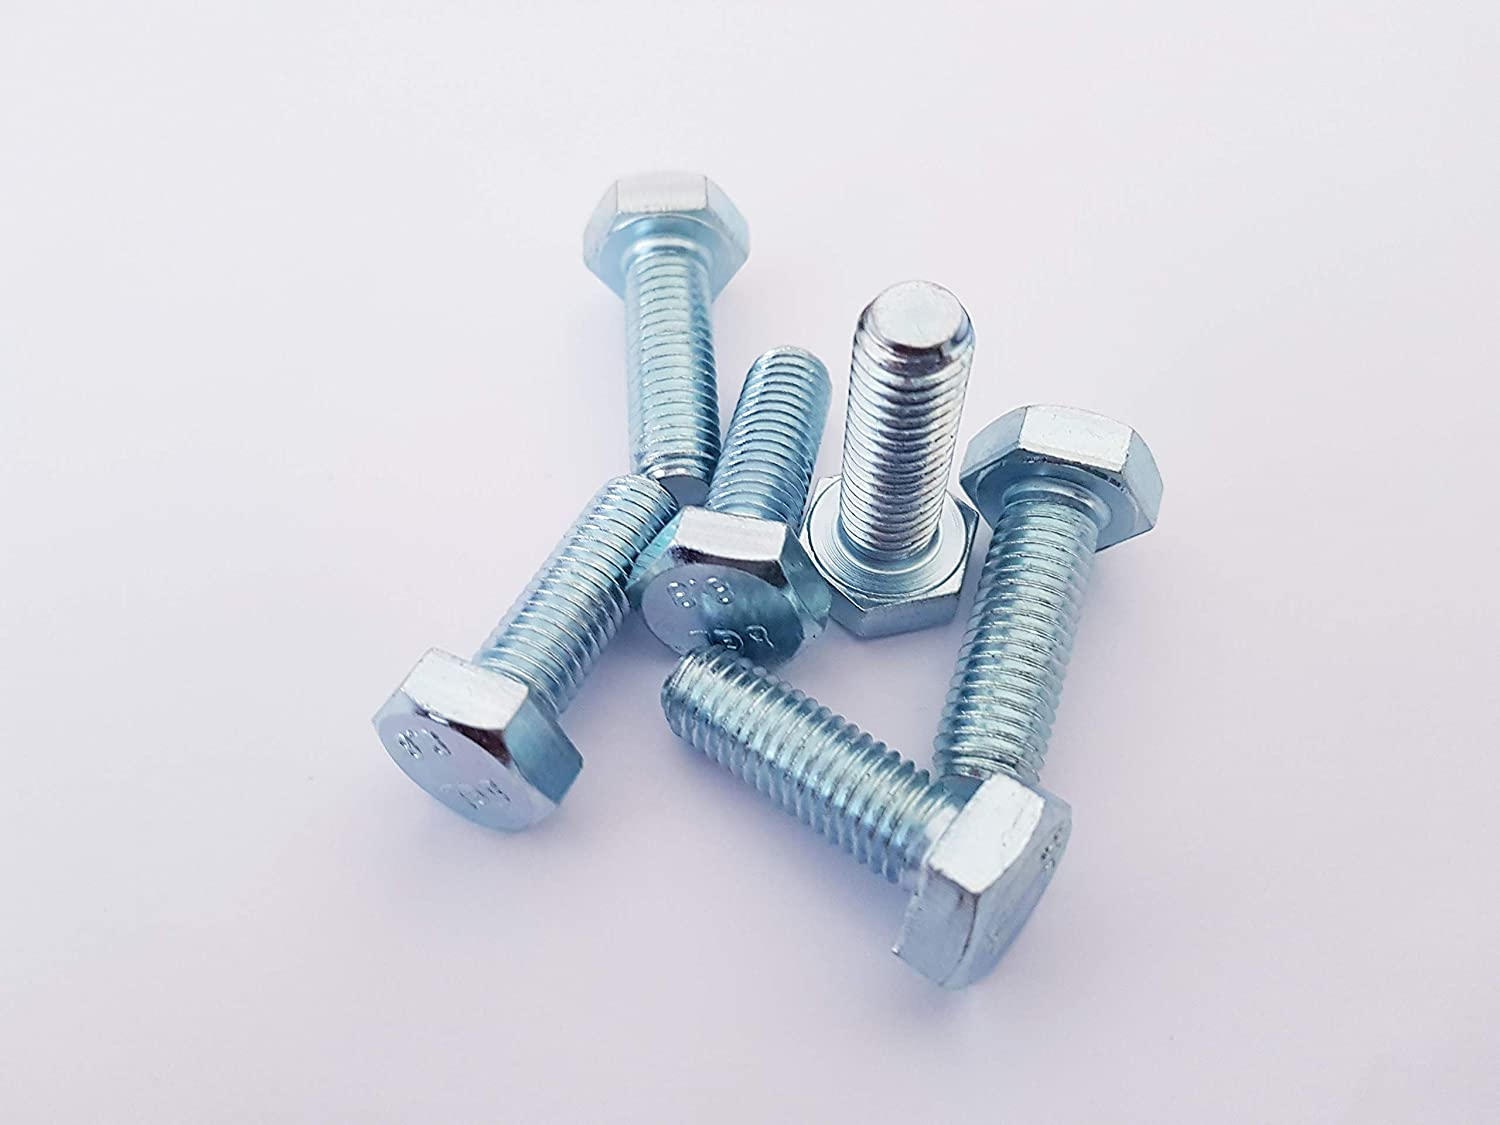 8mm x 16mm ZINC Plated HEX Bolts Pack of 20 M8 Fully Threaded SETSCREWS